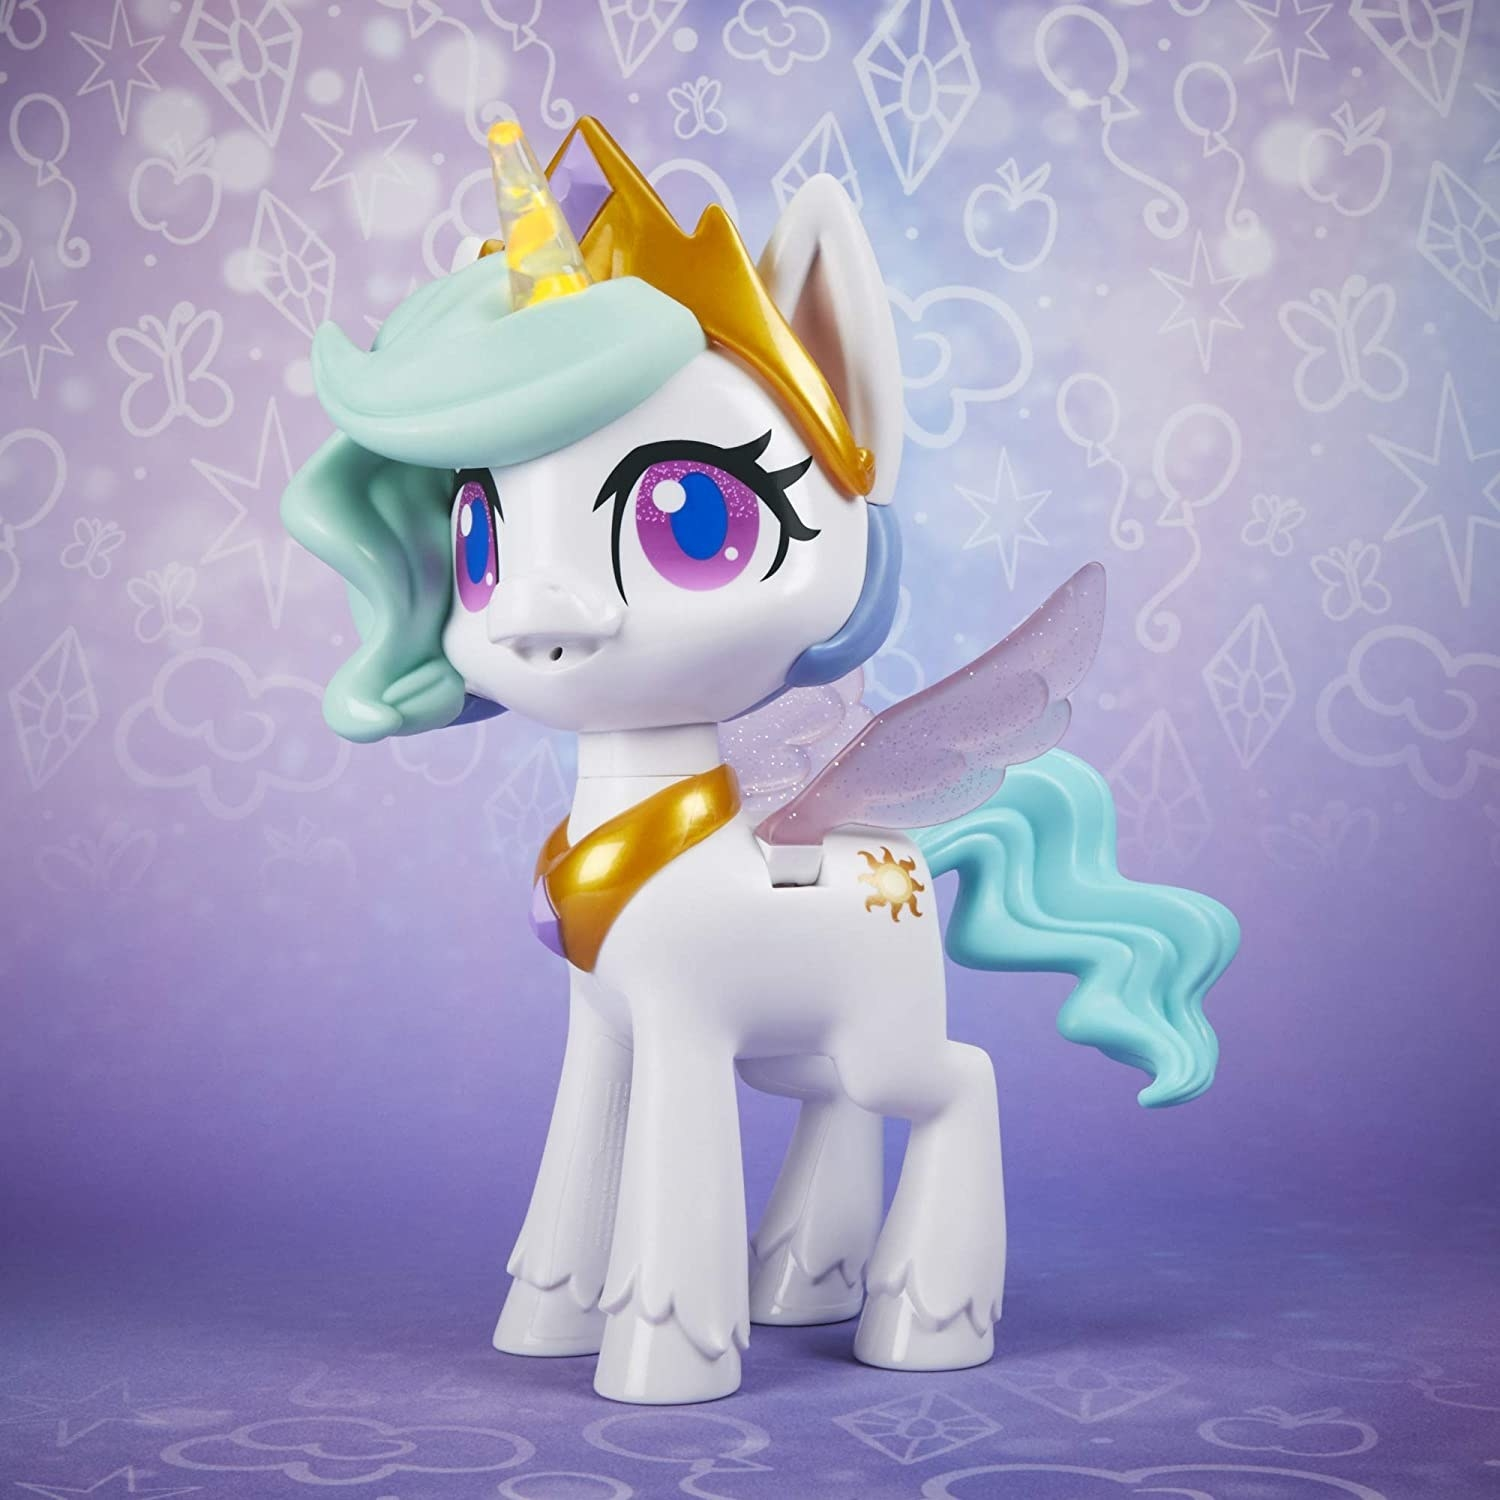 White My Little Pony toy with unicorn horn, wings, and blue mane and tail